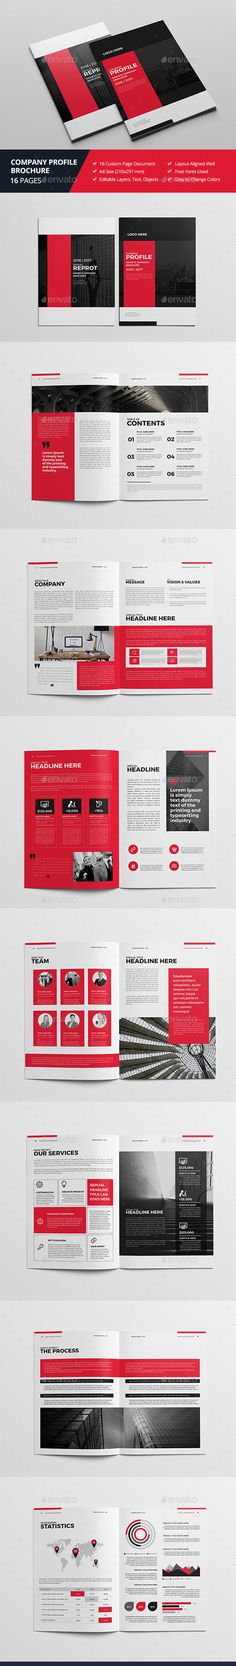 Company Profile Company profile, Corporate brochure and Brochures - business company profile template